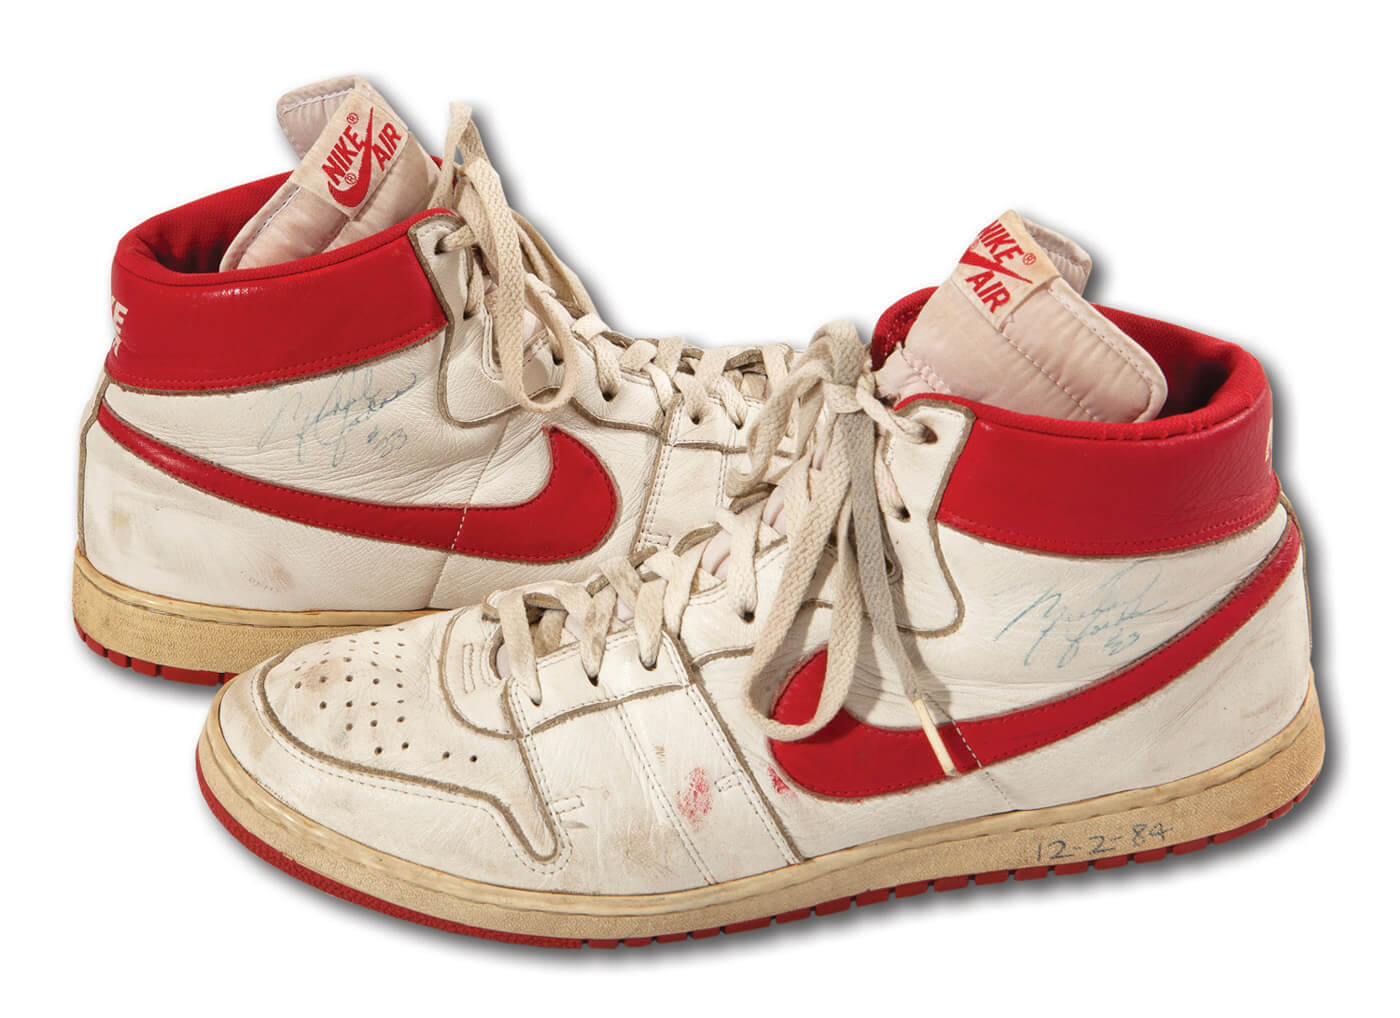 Michael Jordan's Nike Airs Sold for a Almost $100k